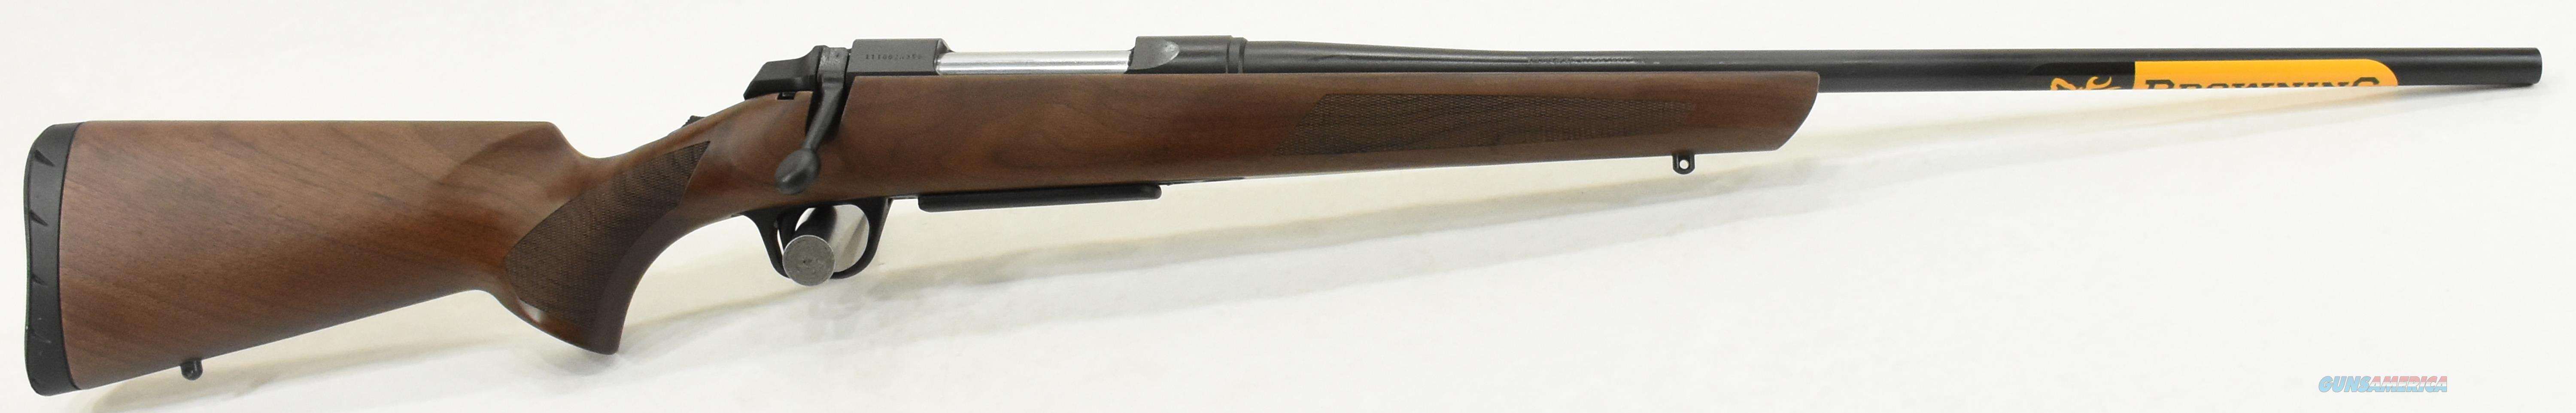 Abolt III Hunter Walnut 30-06Spfld 22In  035801226  Guns > Rifles > Browning Rifles > Bolt Action > Hunting > Blue